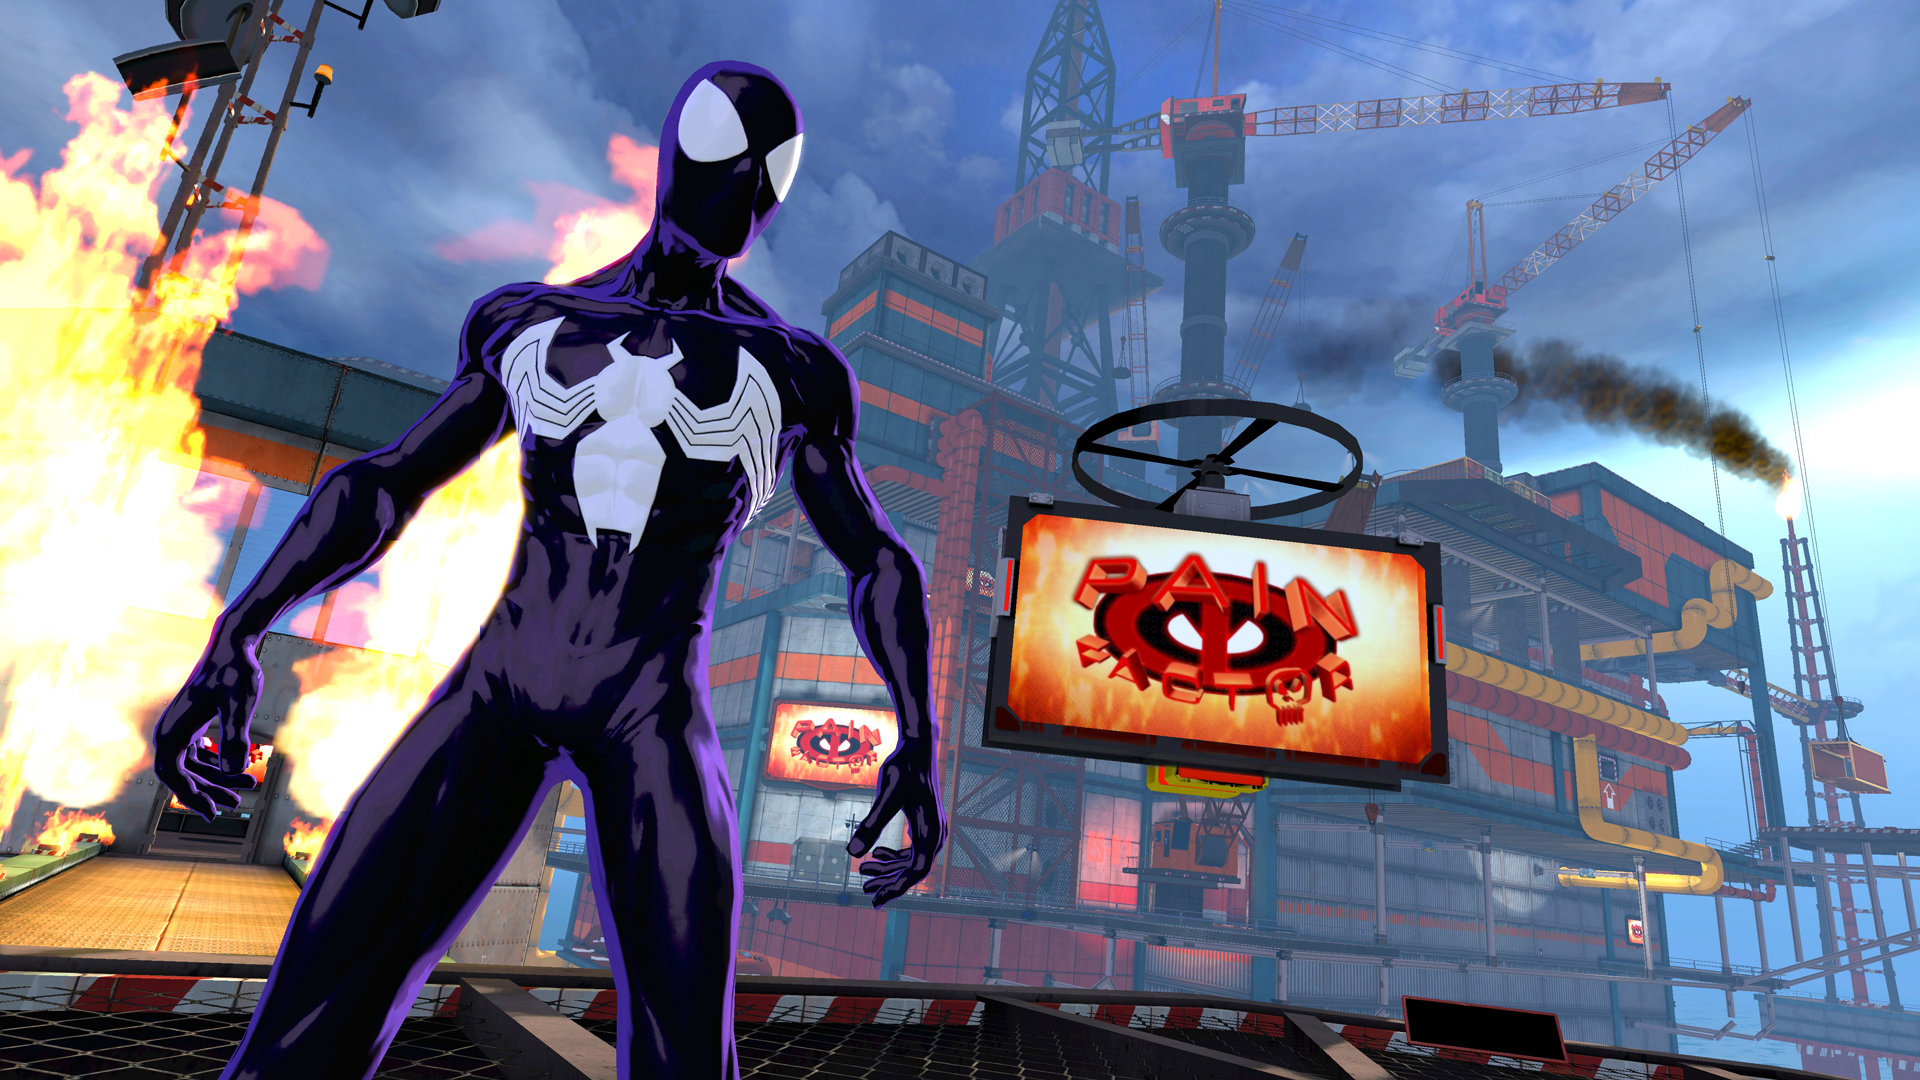 While the Spider-Man of the Ultimate universe isn't nearly as different from the traditional Peter Parker as Spidey Noir or 2099, Beenox gave him the symbiote suit — made famous by implacable Spidey foe Venom — to make this portion of the game more dependent on sheer, brute force than any of the others.